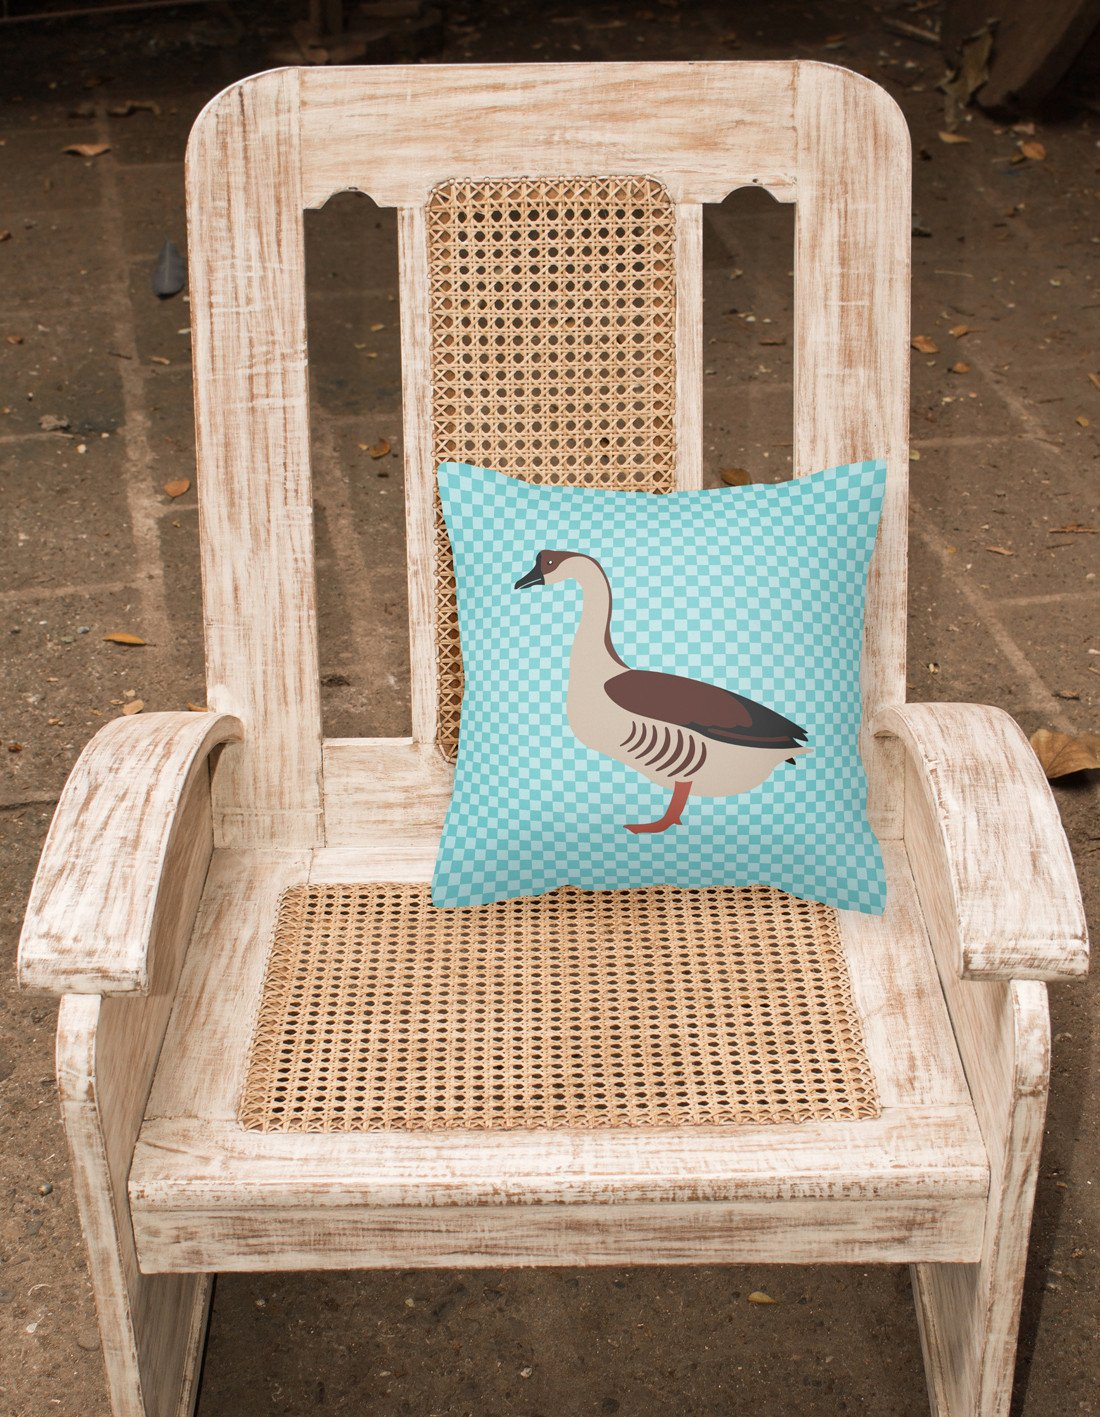 Chinese Goose Blue Check Fabric Decorative Pillow BB8070PW1818 by Caroline's Treasures